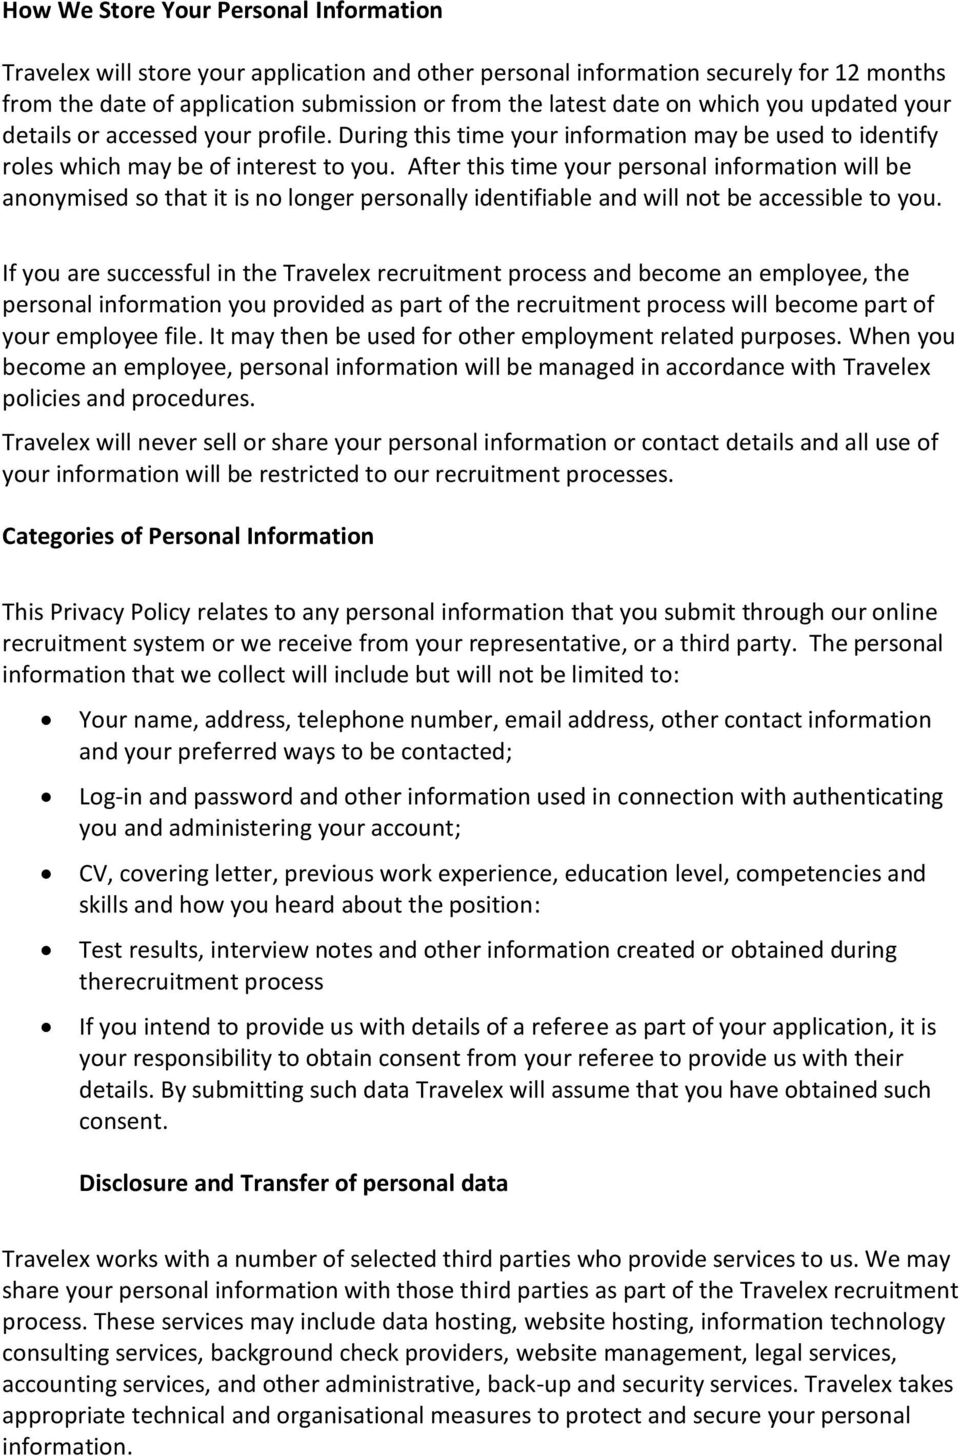 After this time your personal information will be anonymised so that it is no longer personally identifiable and will not be accessible to you.